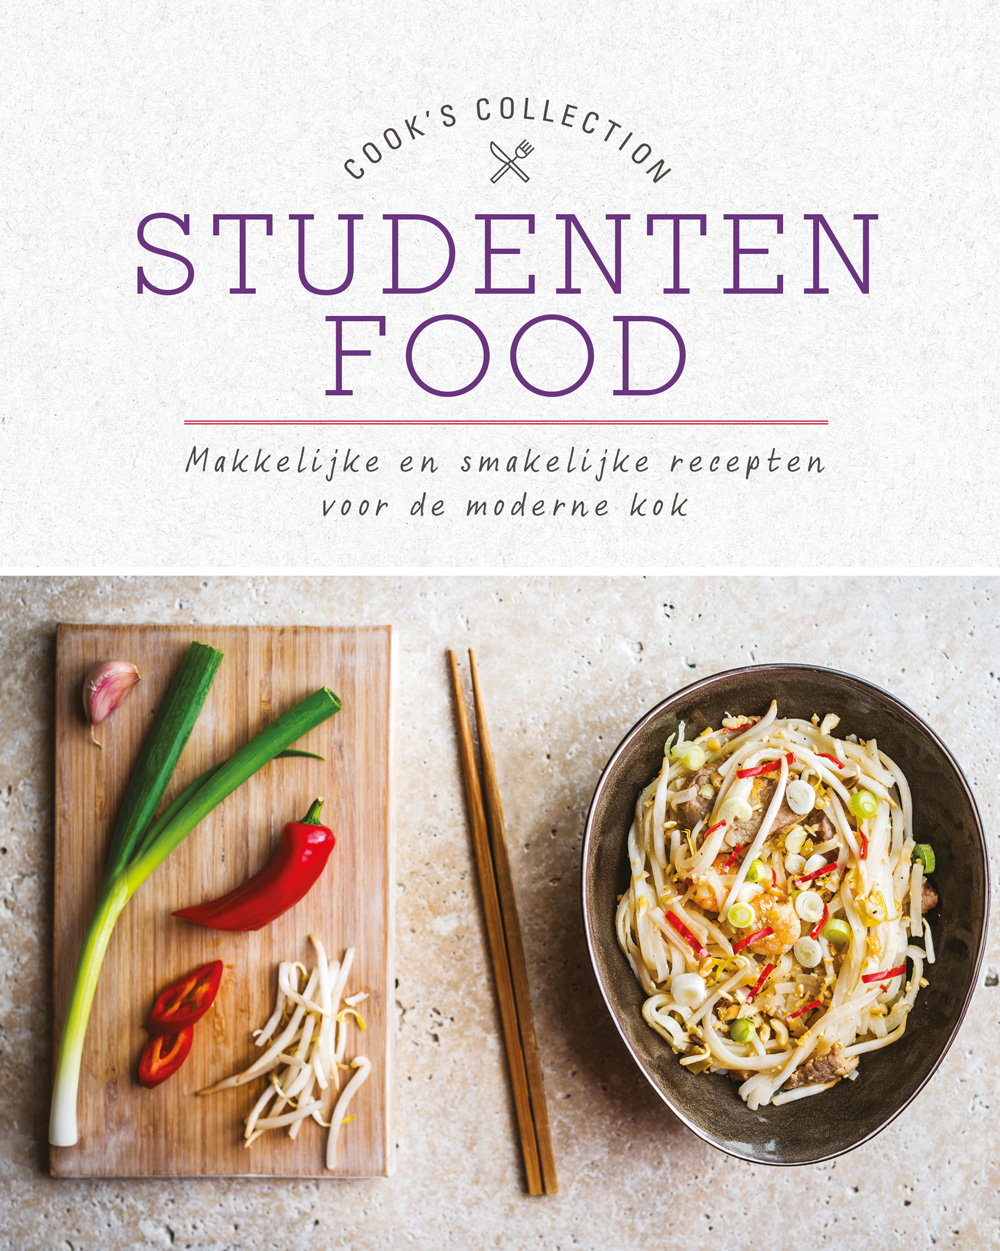 Cook's Collection-studenten food